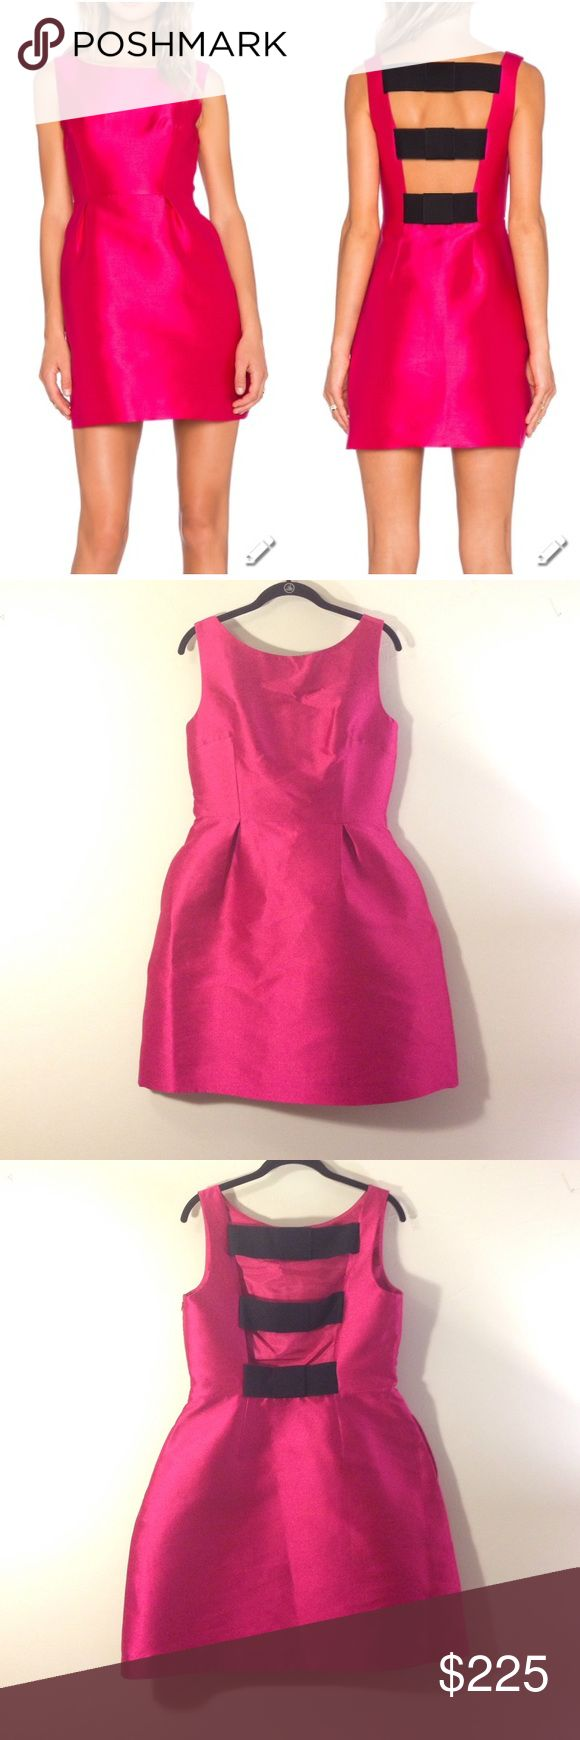 New Kate Spade Hot Pink Mini Dress size 10 This is the perfect cocktail dress! It's hot pink with a cute black back accent. Great with heels or flats. This dress is brand new with tags. kate spade Dresses Mini